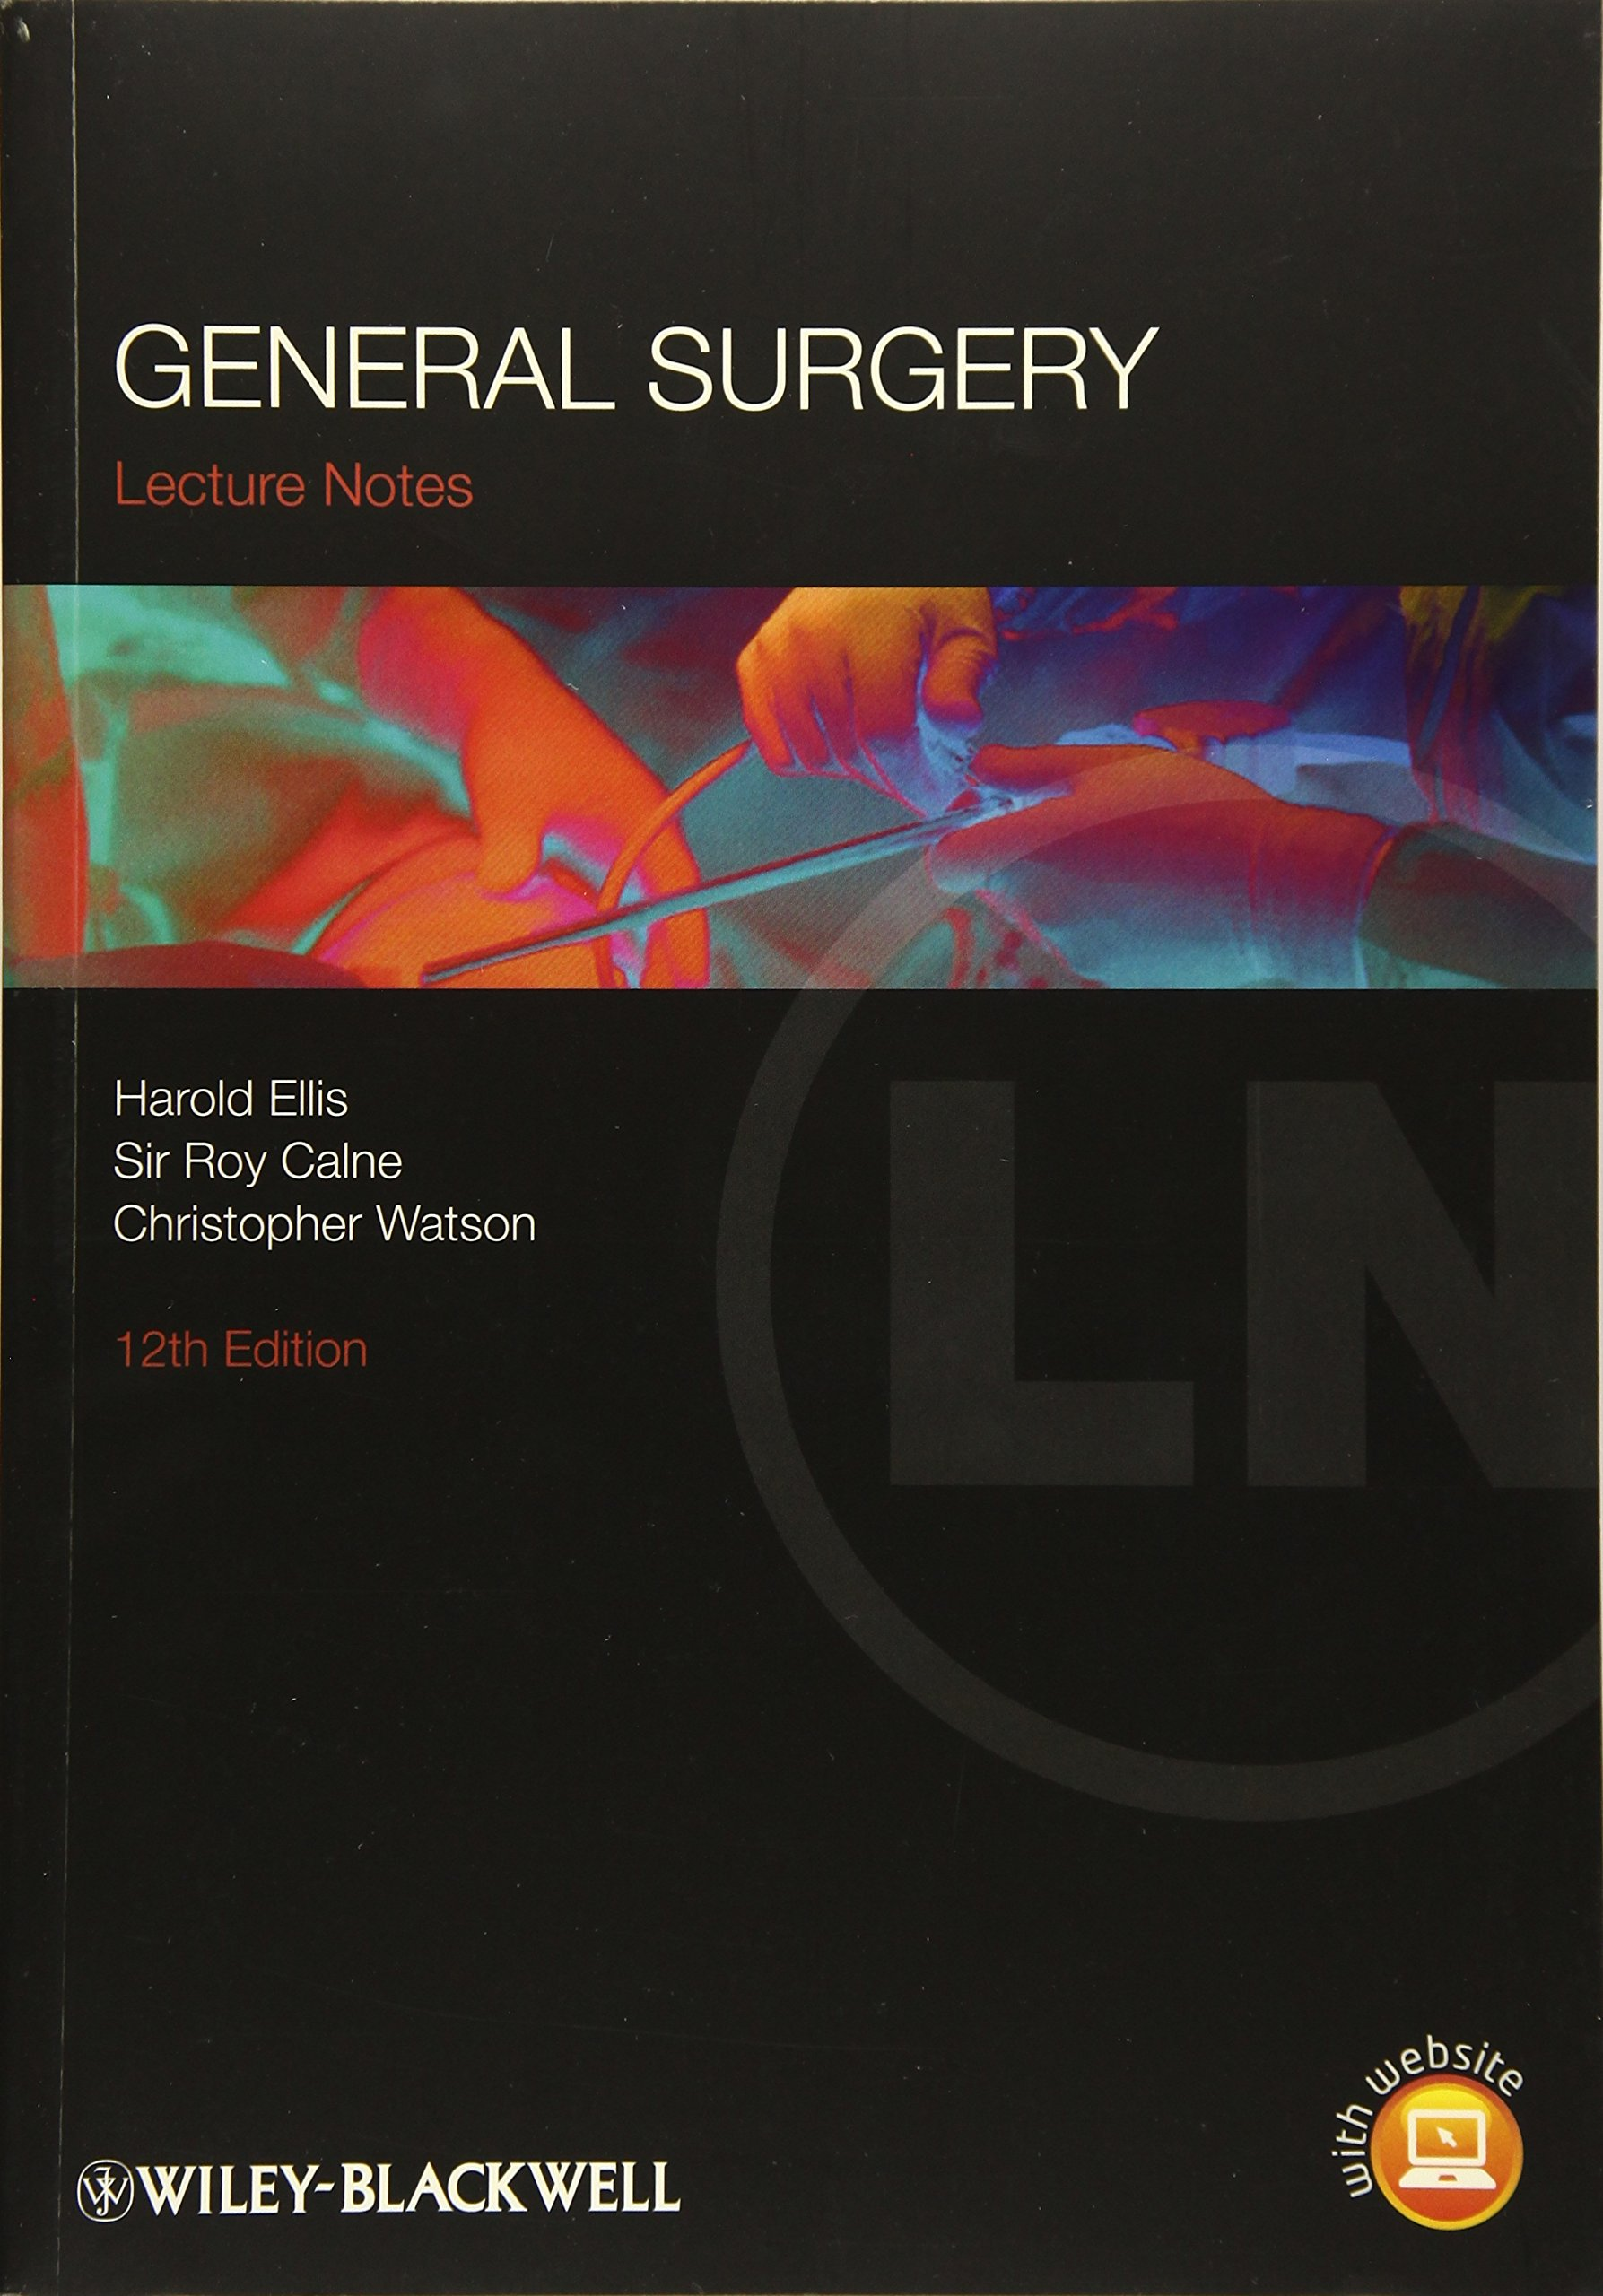 Lecture Notes General Surgery Amazon Co Uk Ellis Harold Calne Sir Roy Watson Christopher 9781444334401 Books